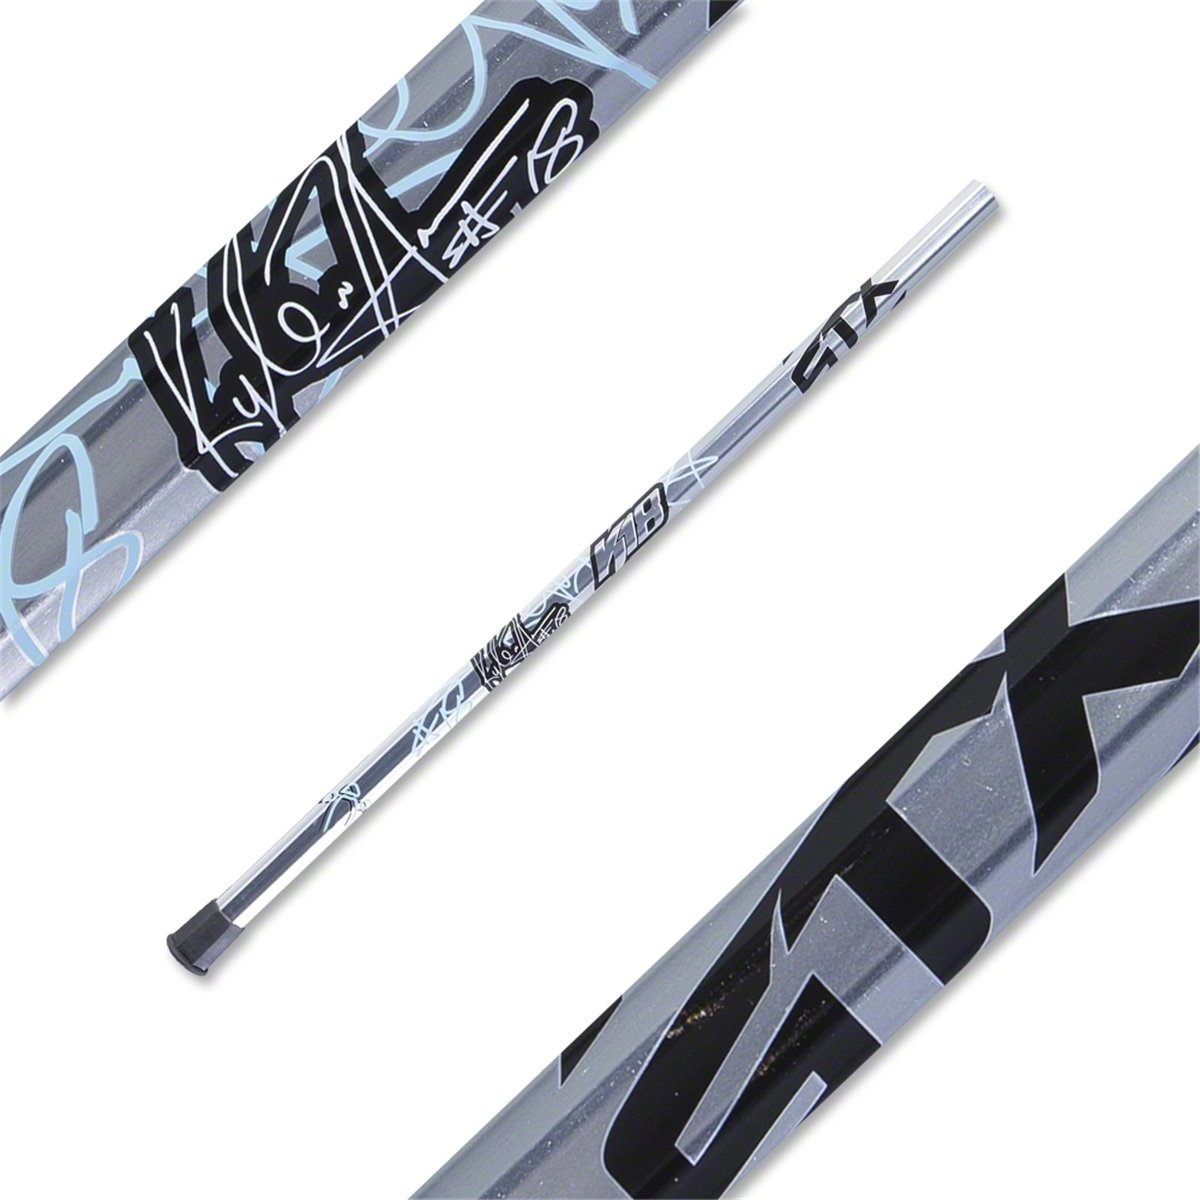 STX Lacrosse K18 Attack and Midfield Lacrosse Shaft